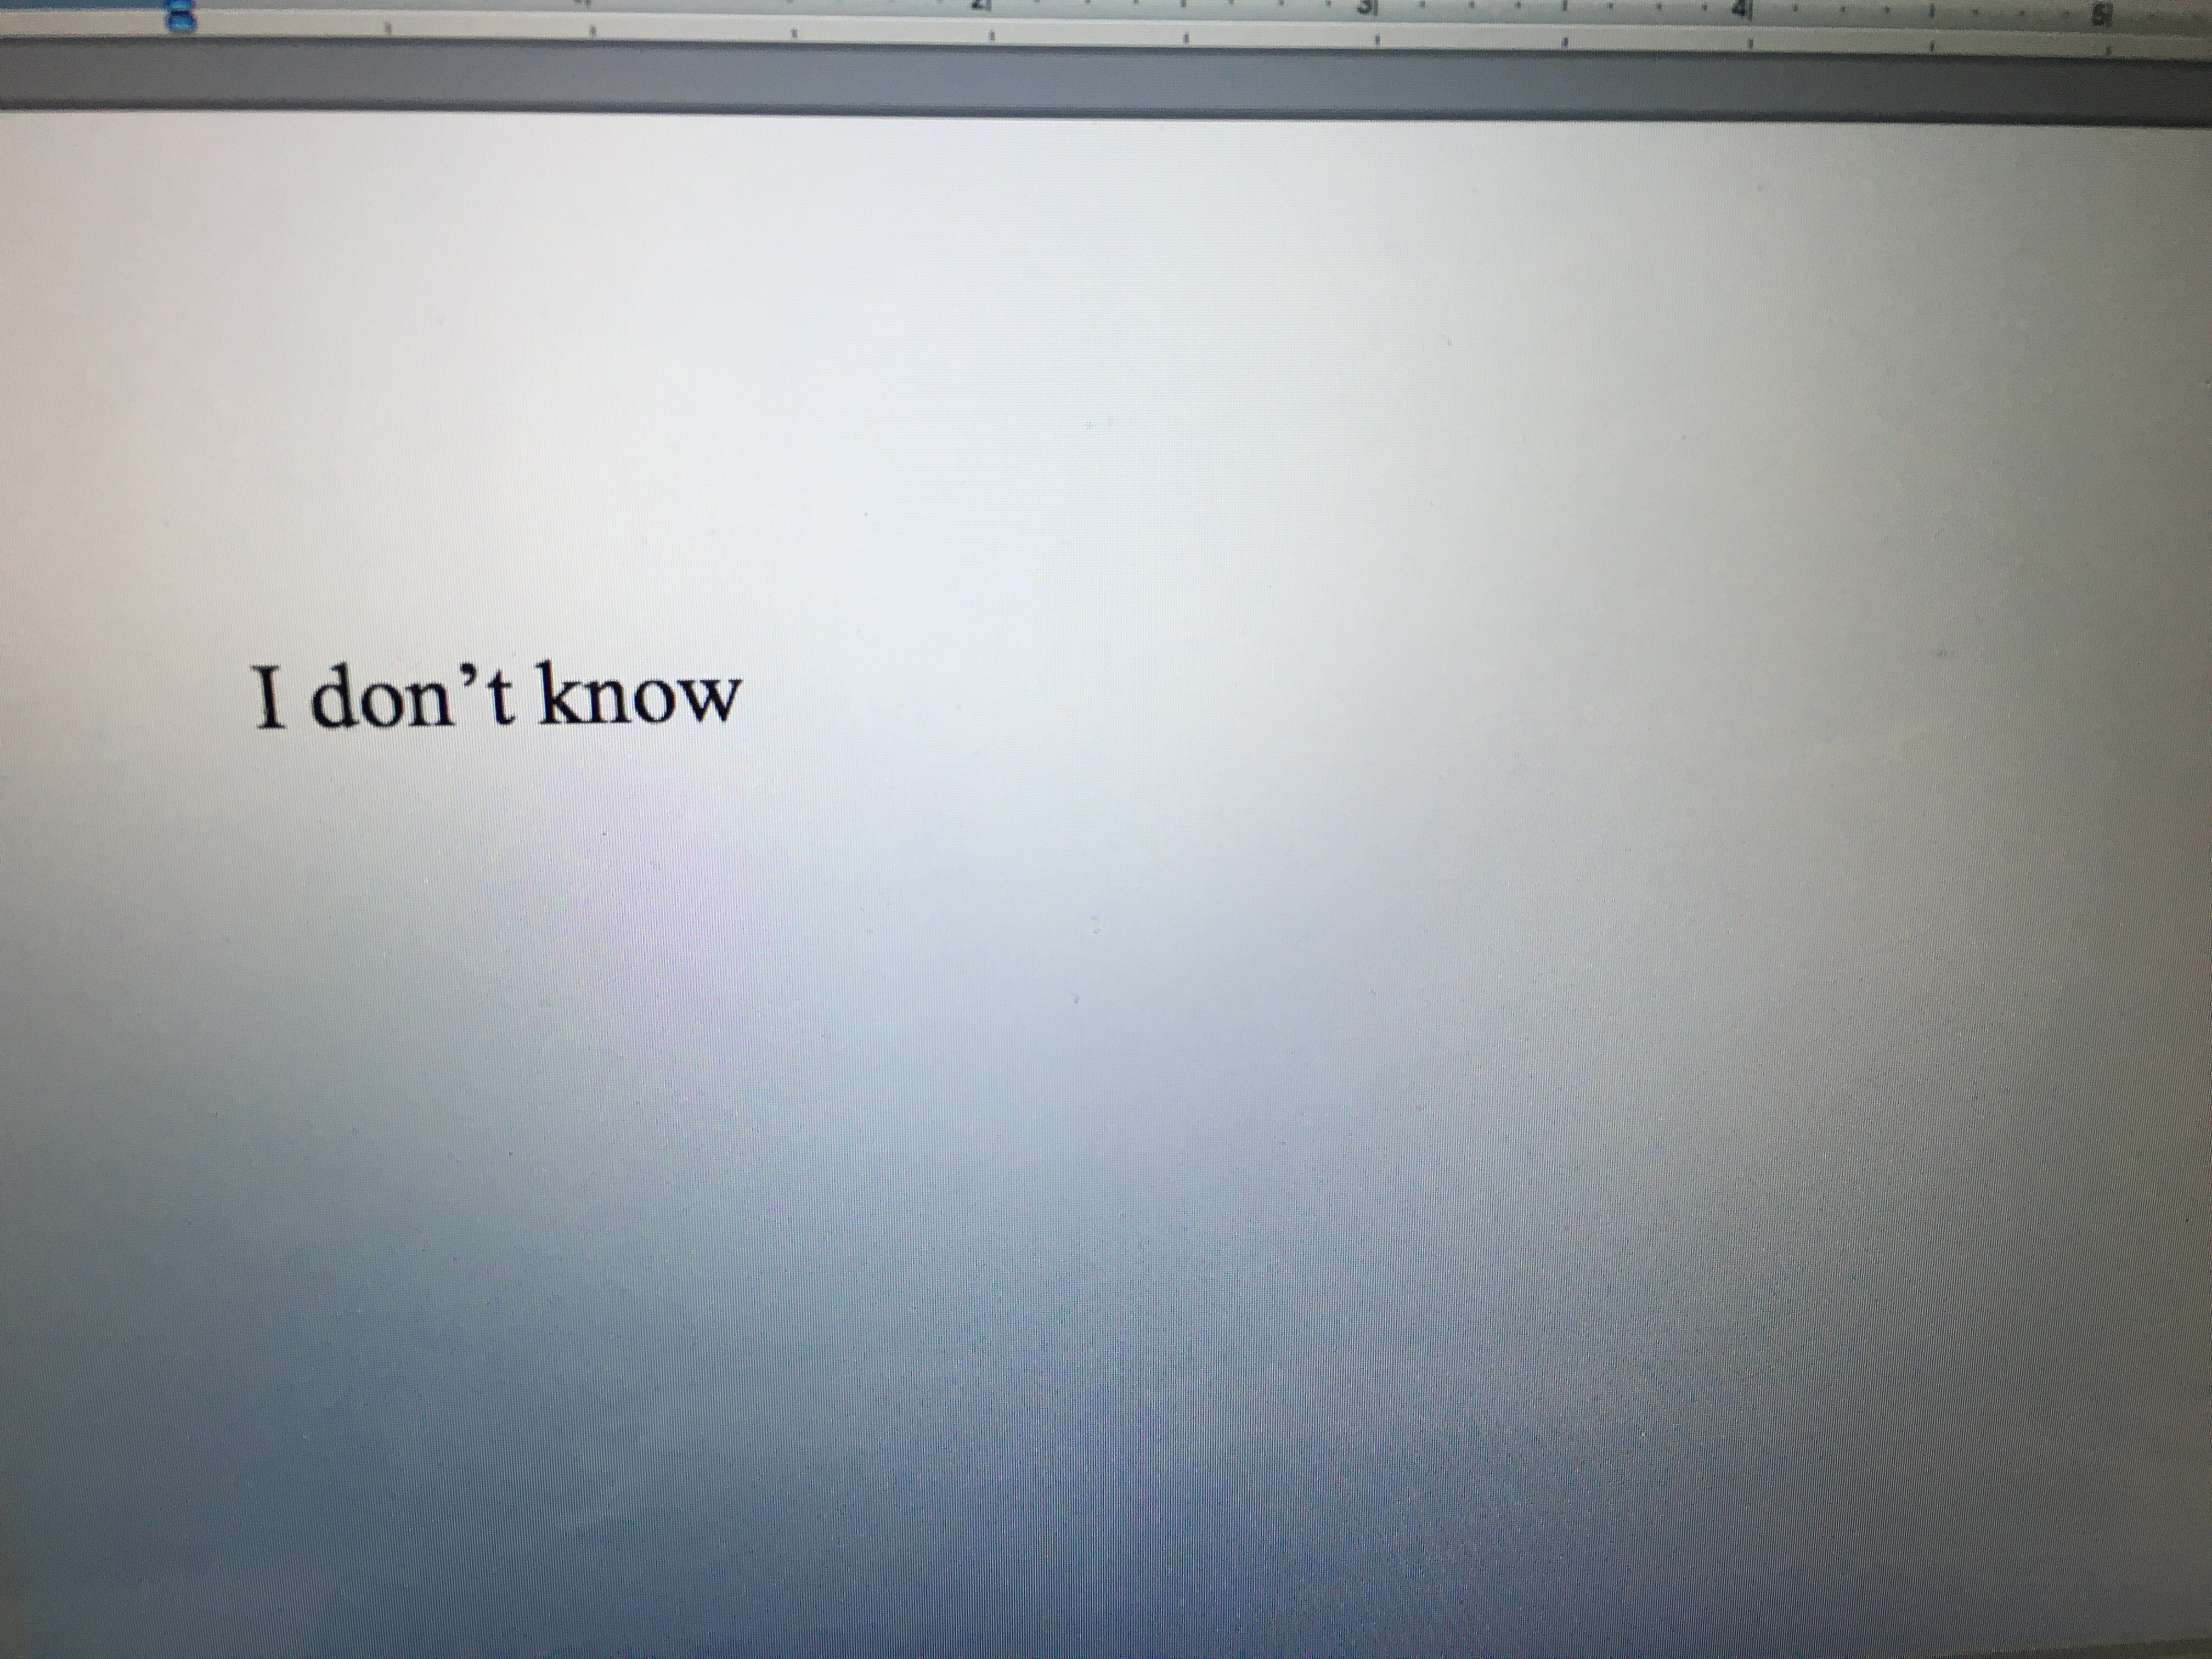 What is a good Poem to do an essay on?